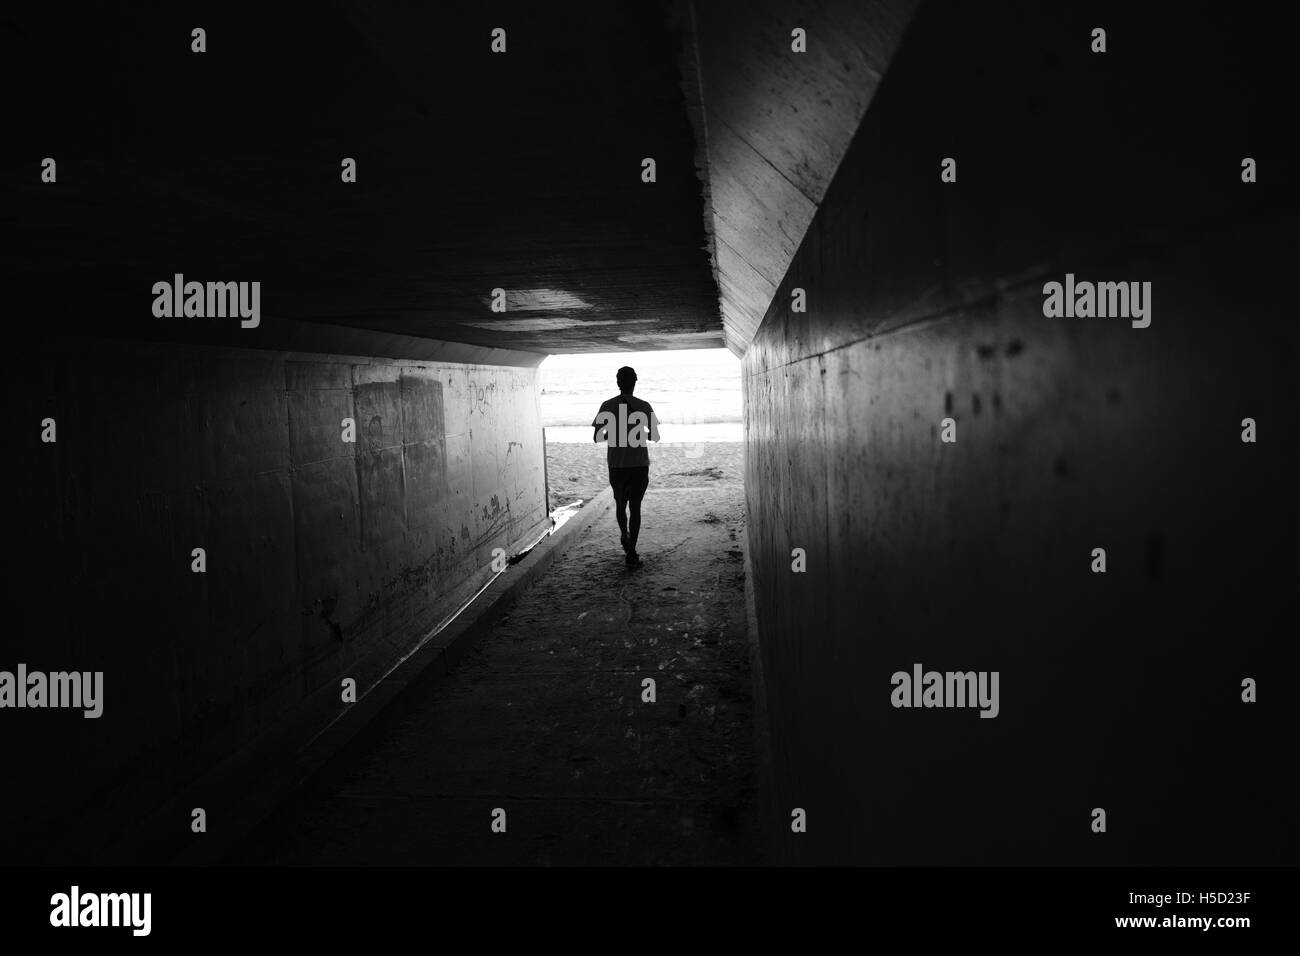 Edgy black and white photograph of a man walking through a tunnel